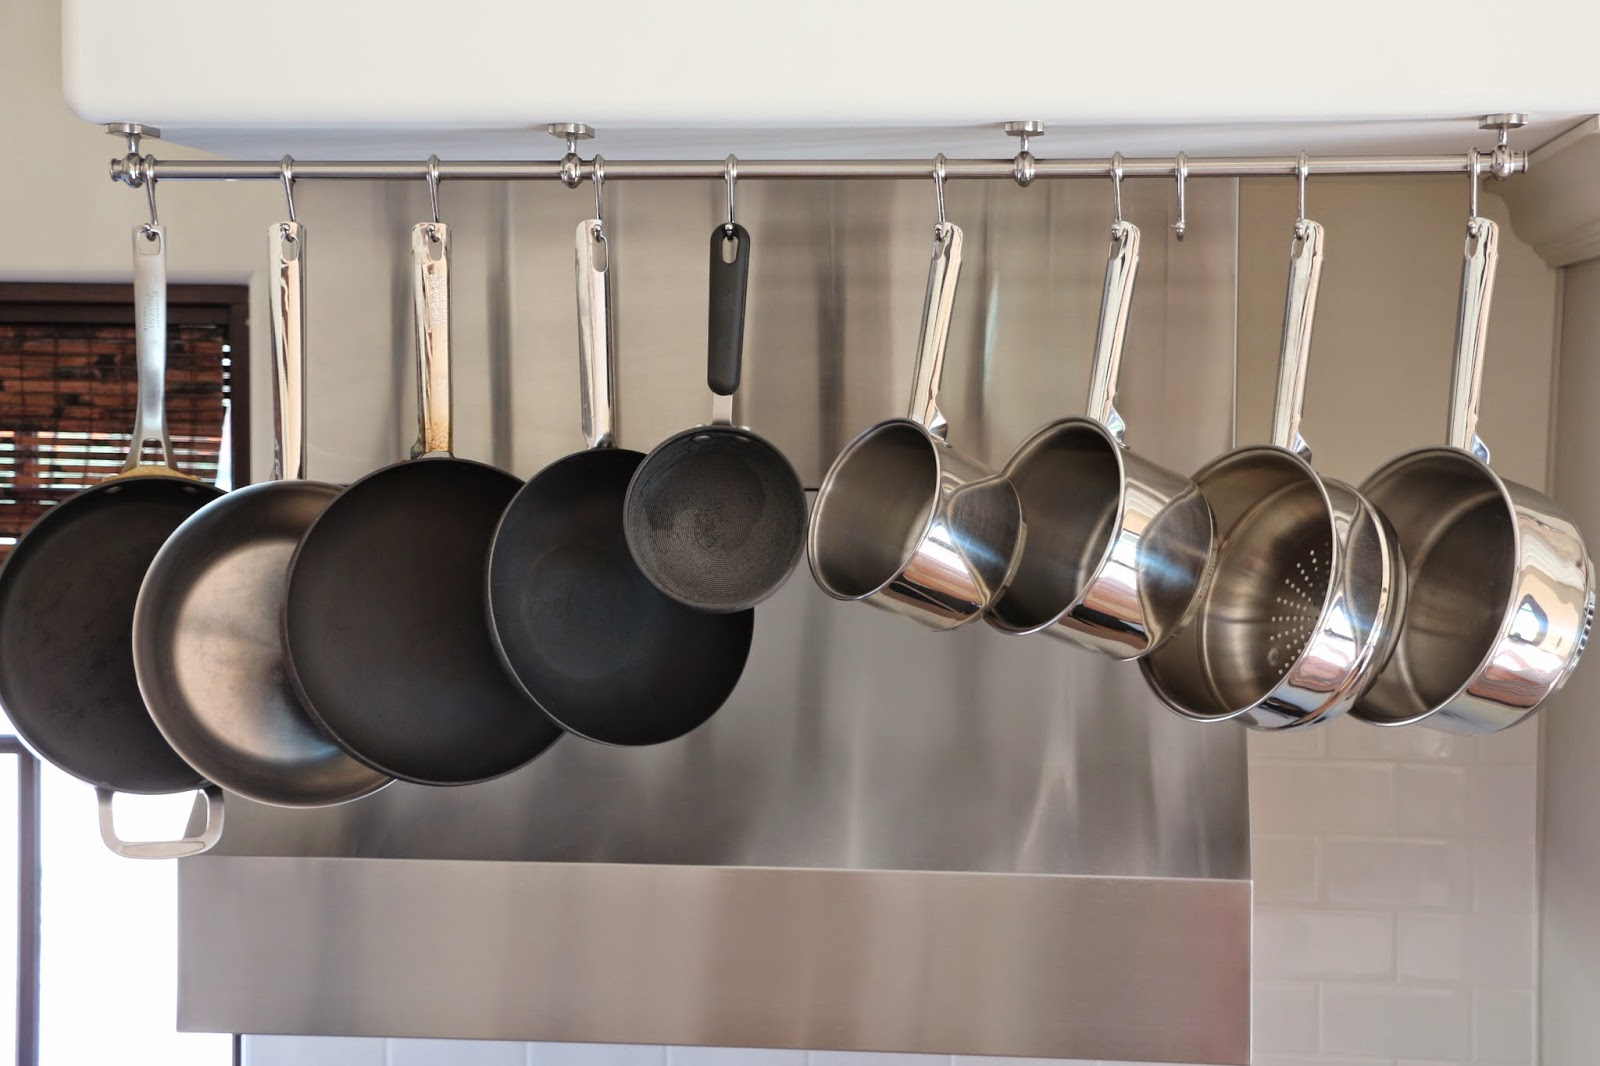 ikea fintorp as potrack, hanging kitchen pots, potrack, hanging kitchen pots